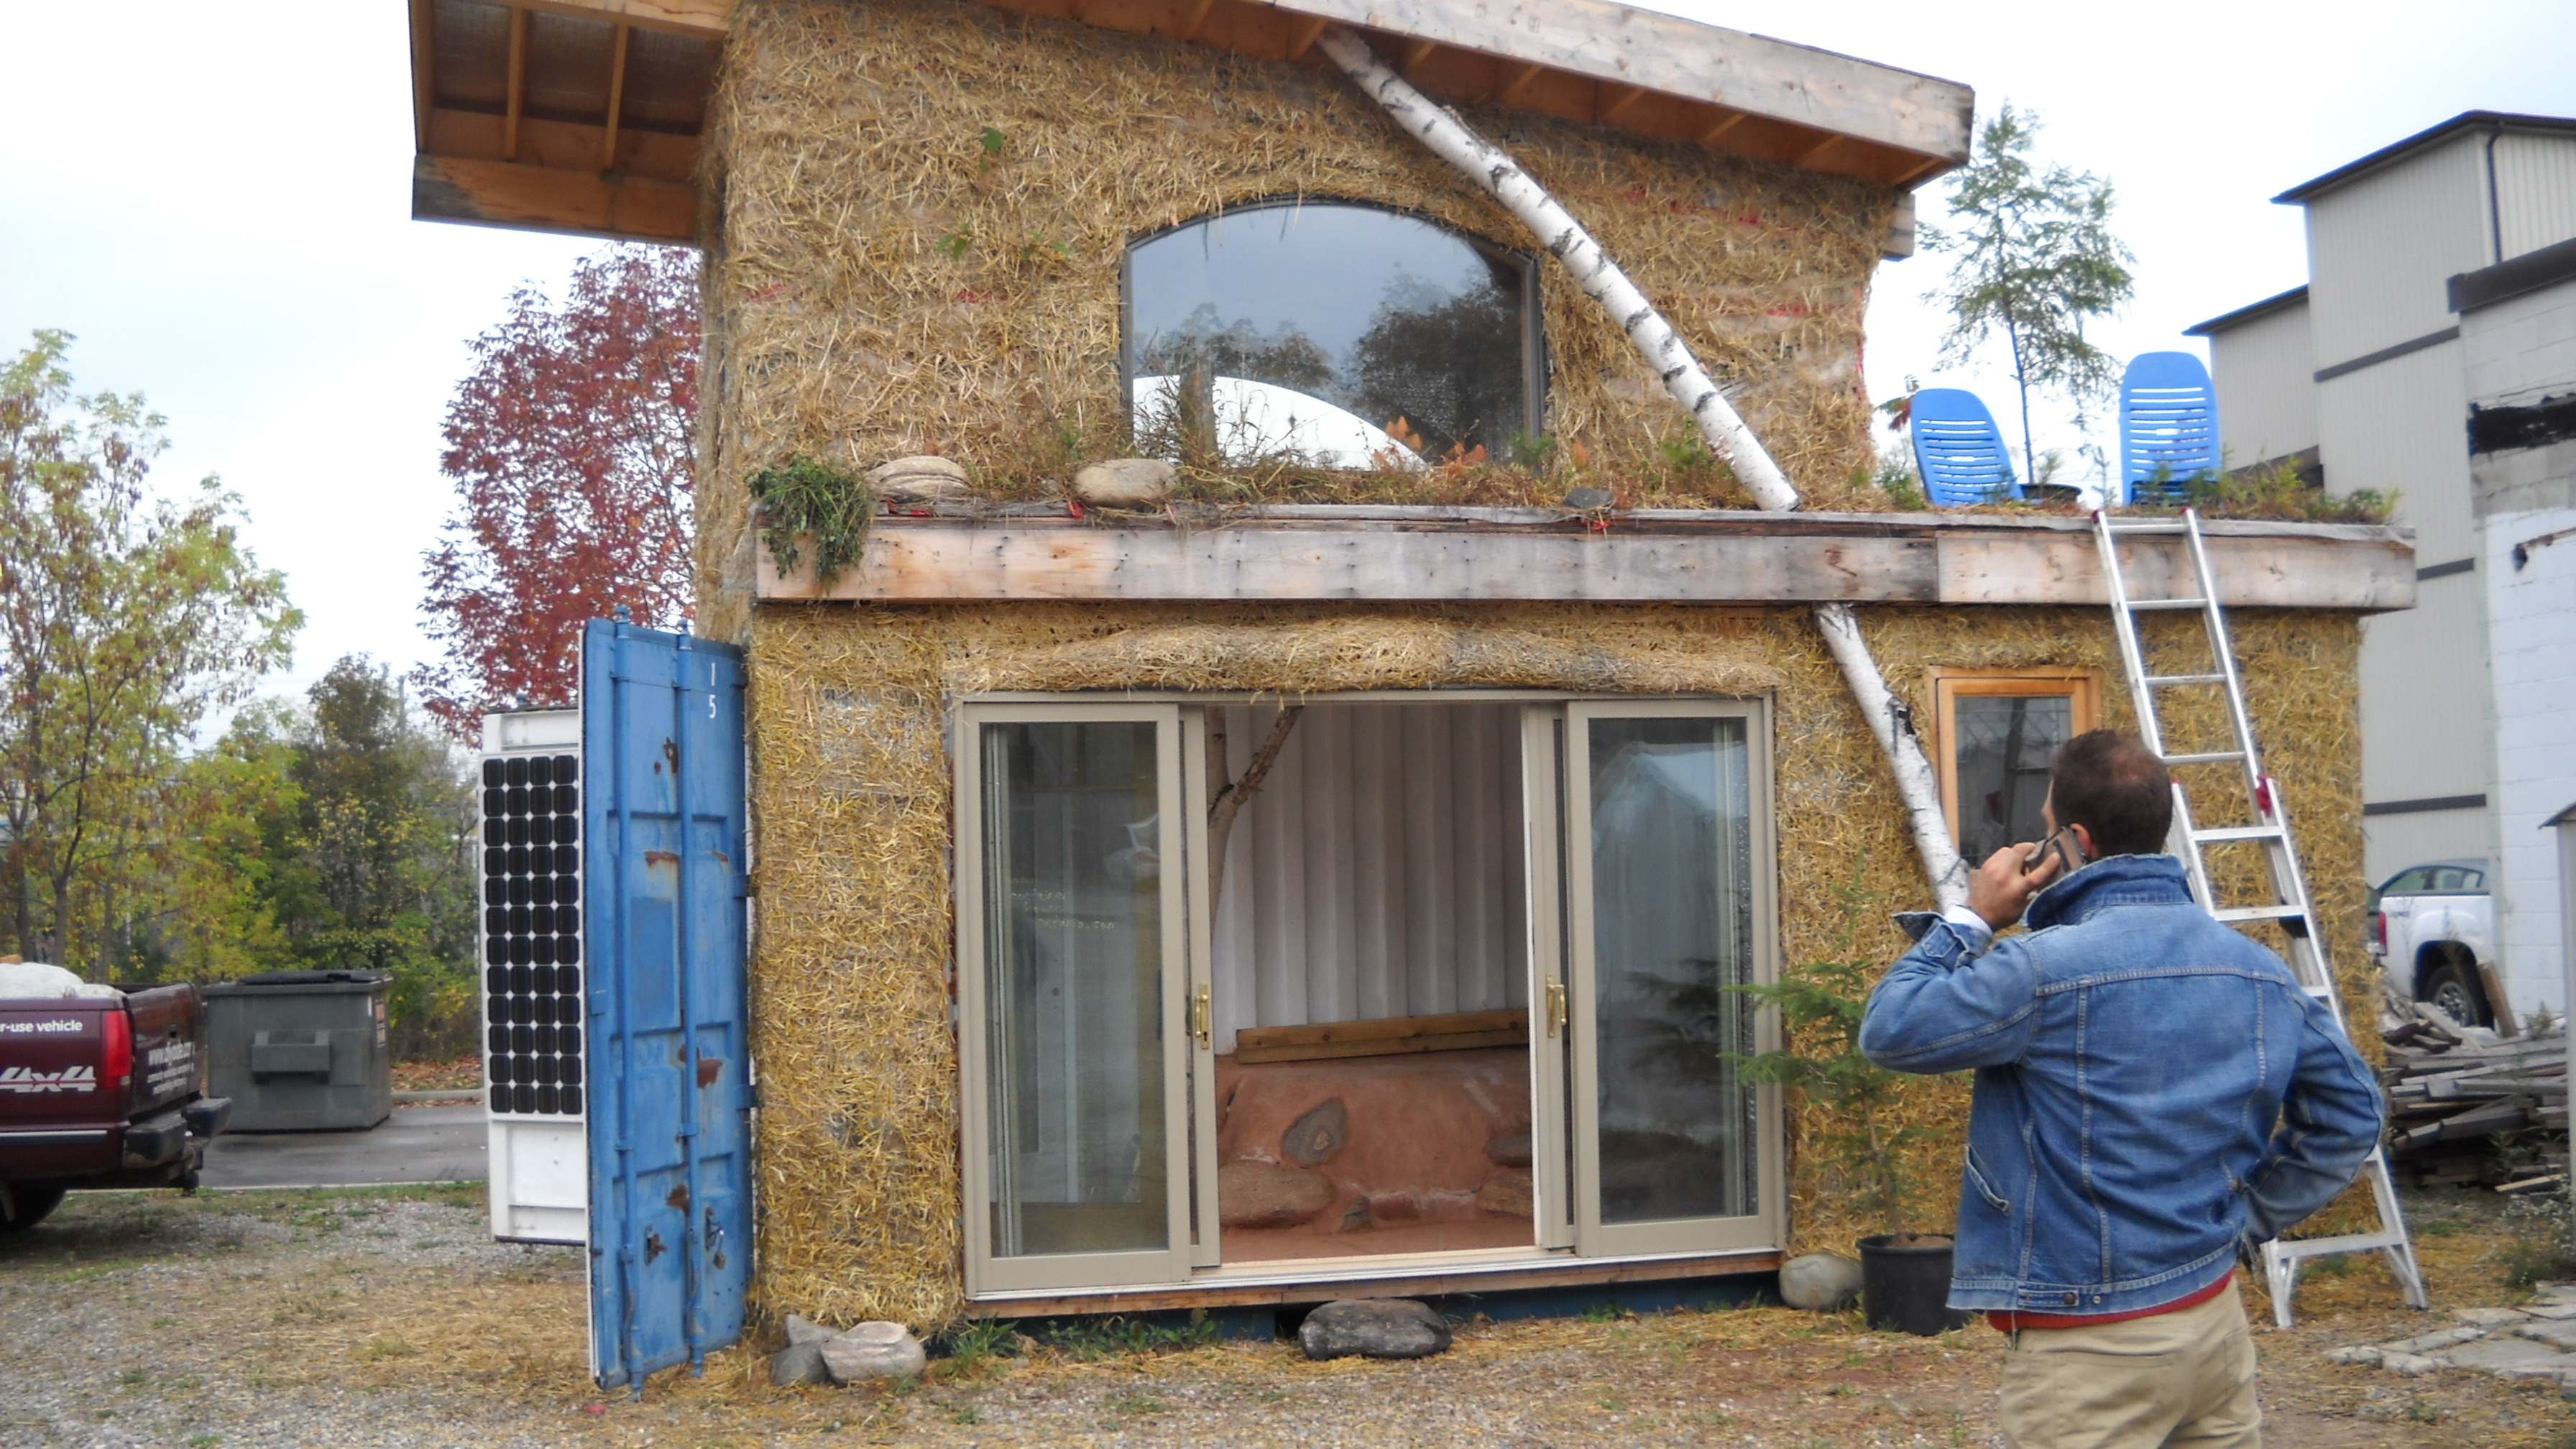 Sustainable Container House In Guelph, Ontario, Seeking New Home